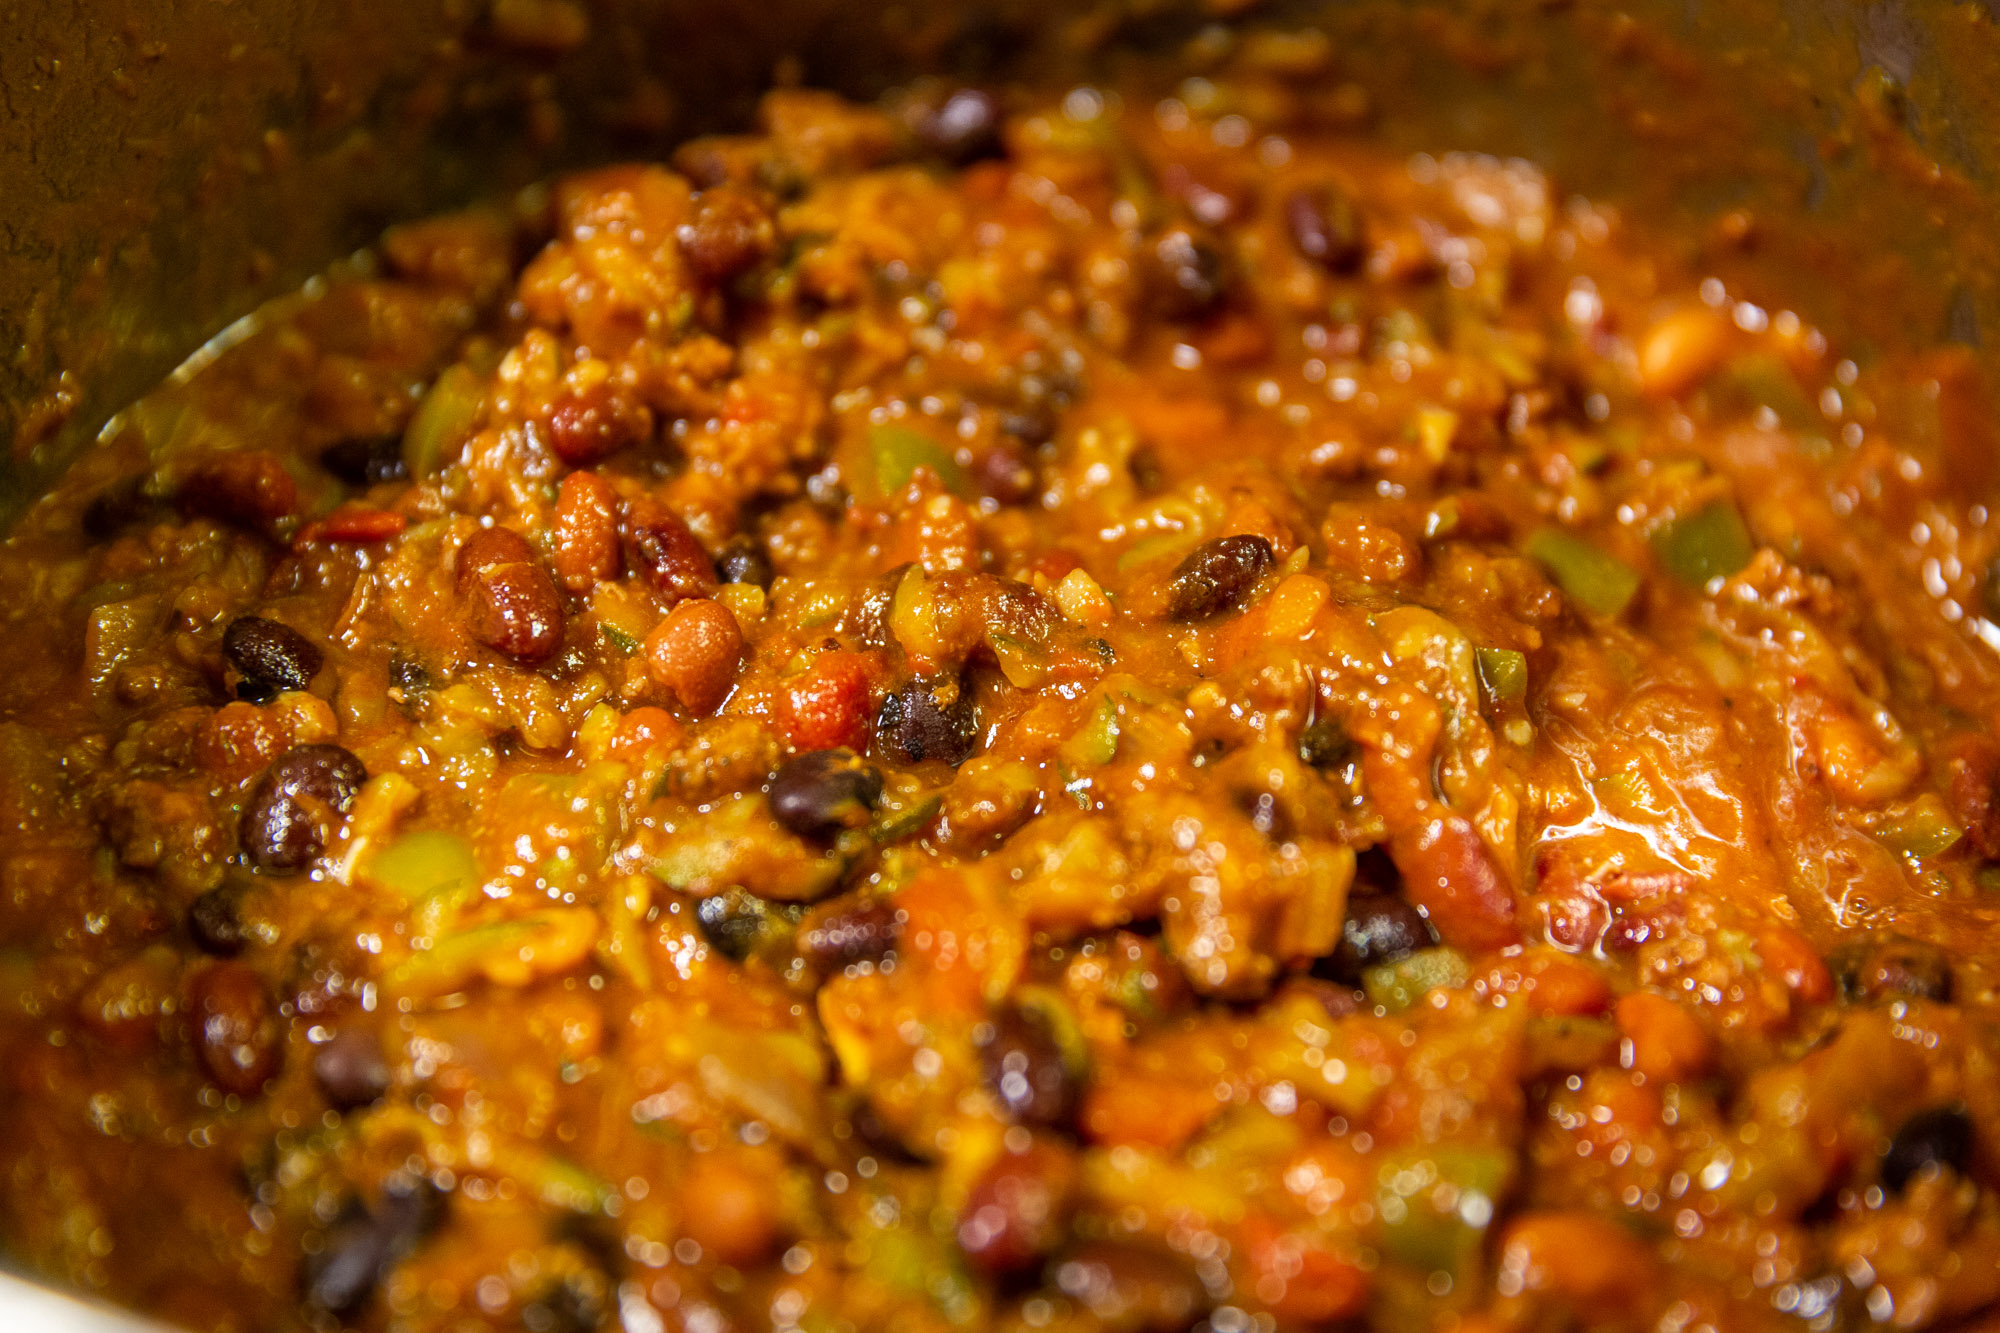 The finished Black Bean Pumpkin Chili getting ready to simmer